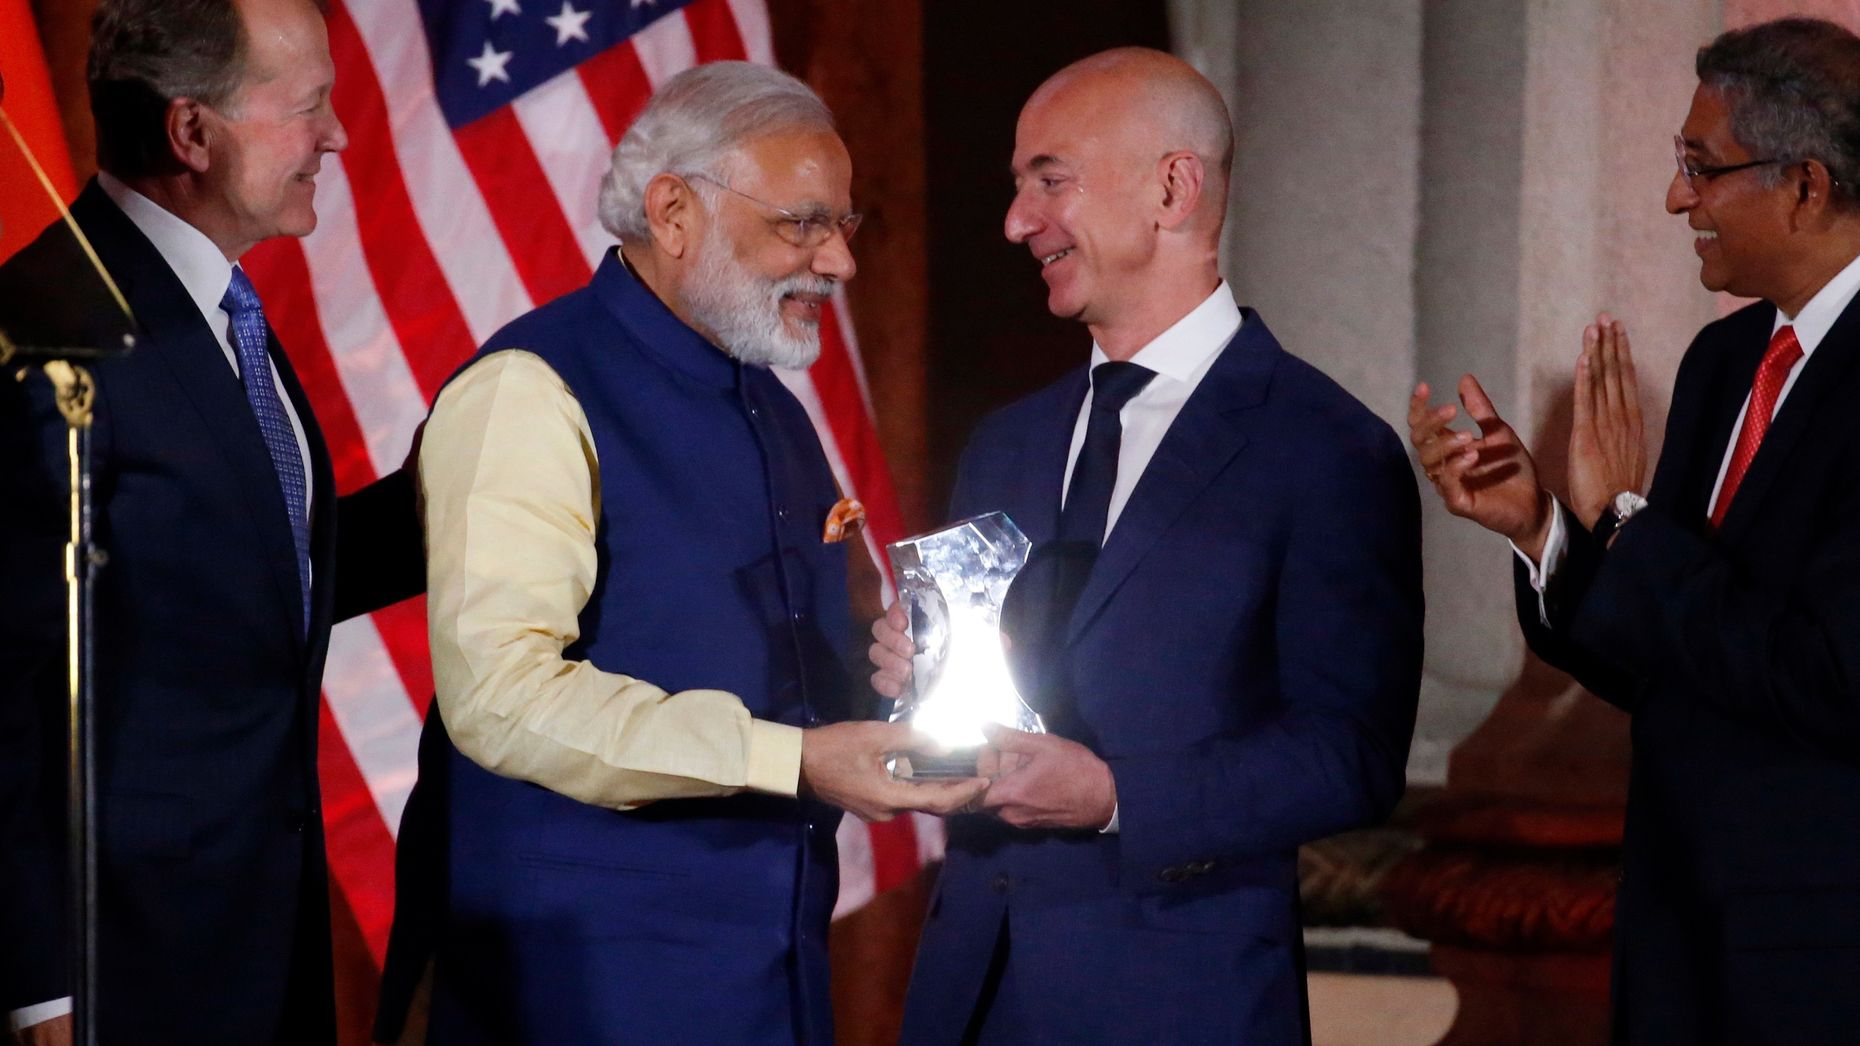 Indian Prime Minister Narendra Modi presenting an award to Amazon CEO Jeff Bezos in Washington on Tuesday. Photo by AP.